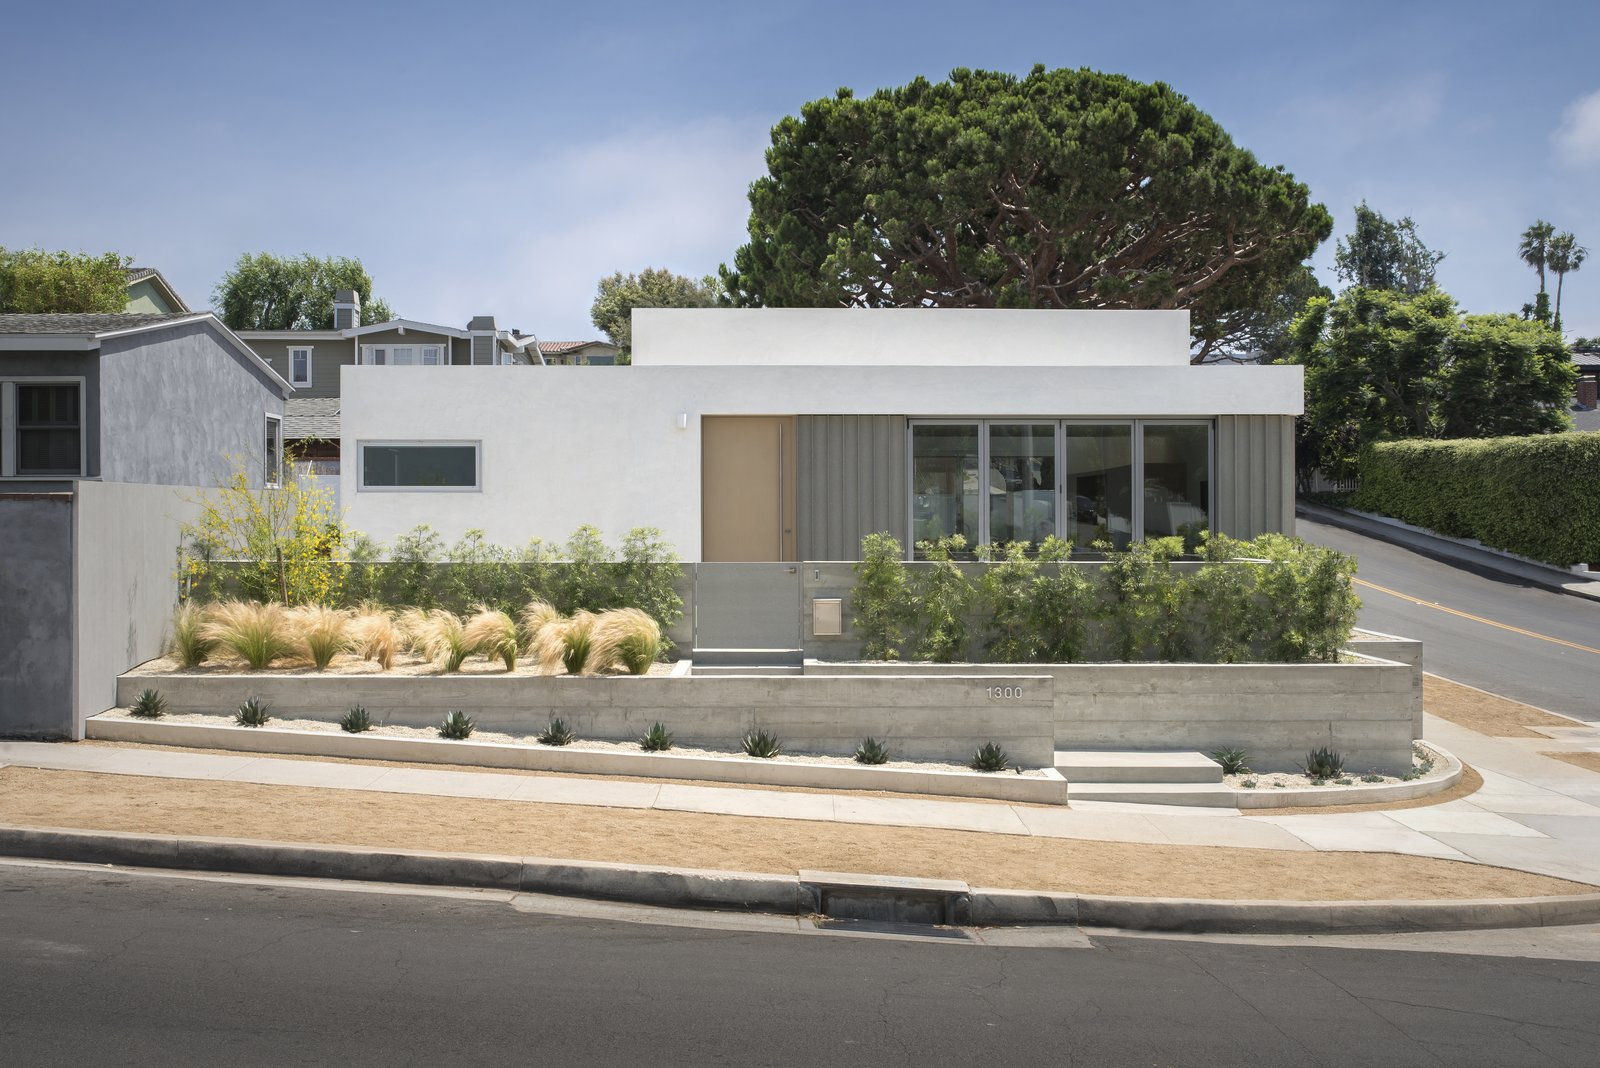 A Cramped Midcentury Bungalow Gets a Luminous New Addition